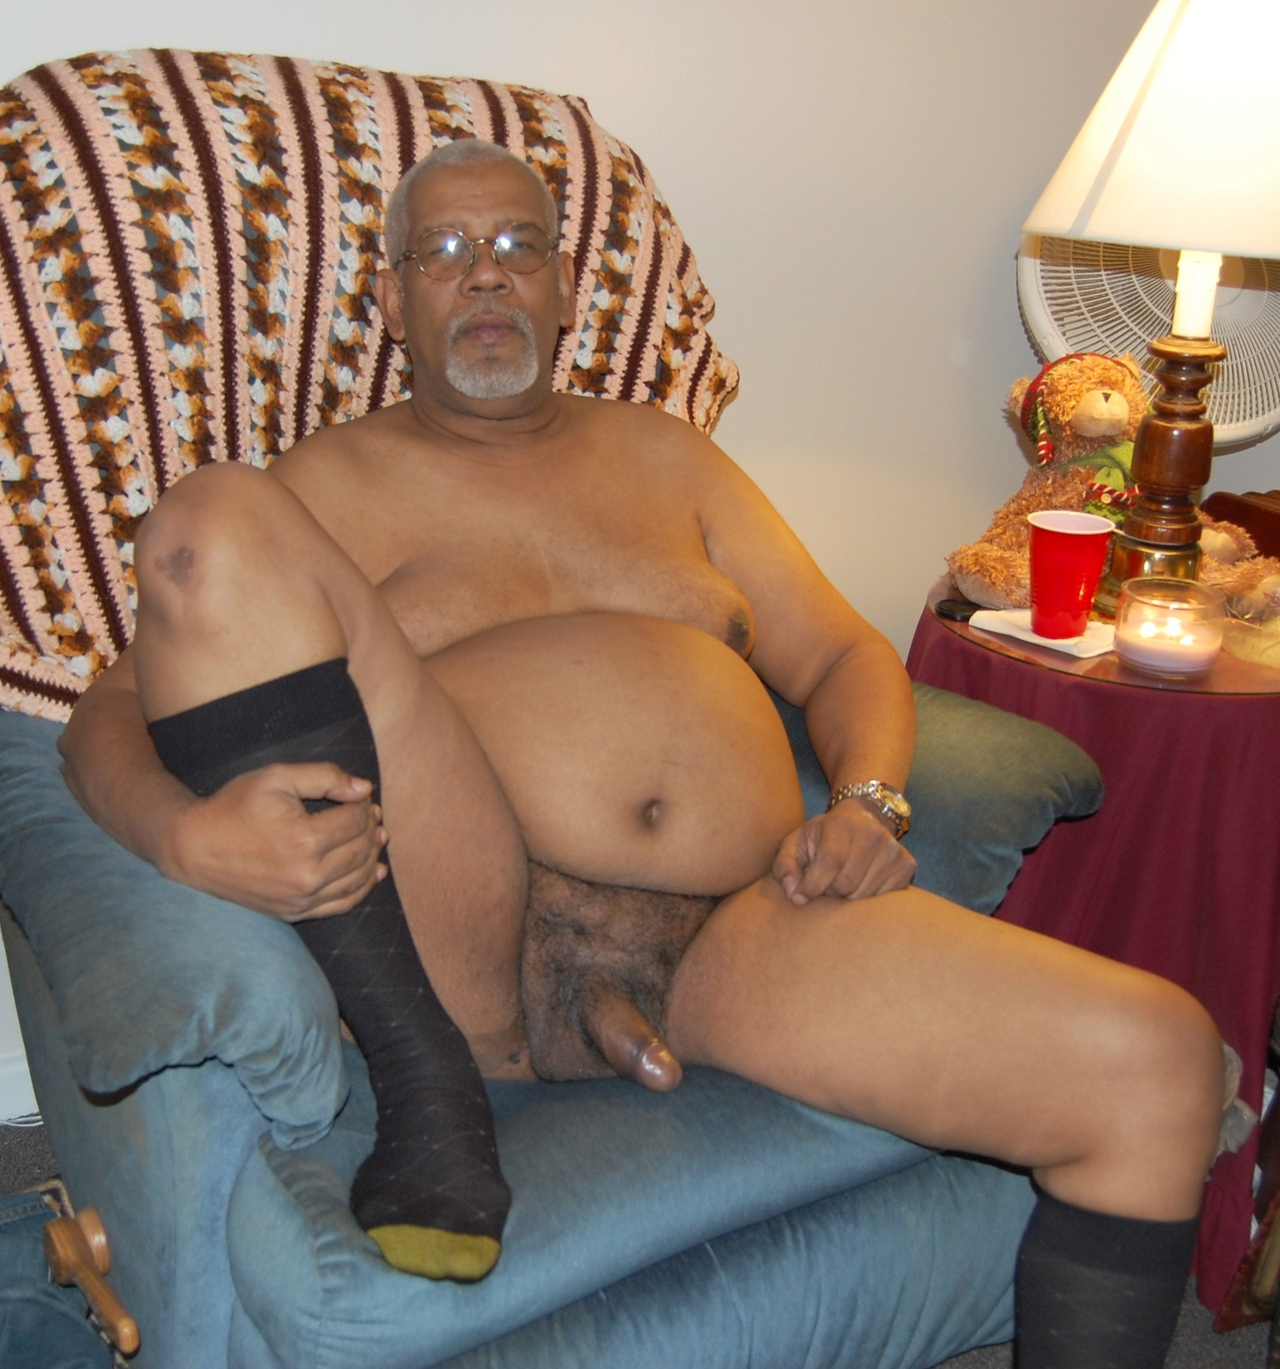 Hot old men nude wallpaper erotic pictures